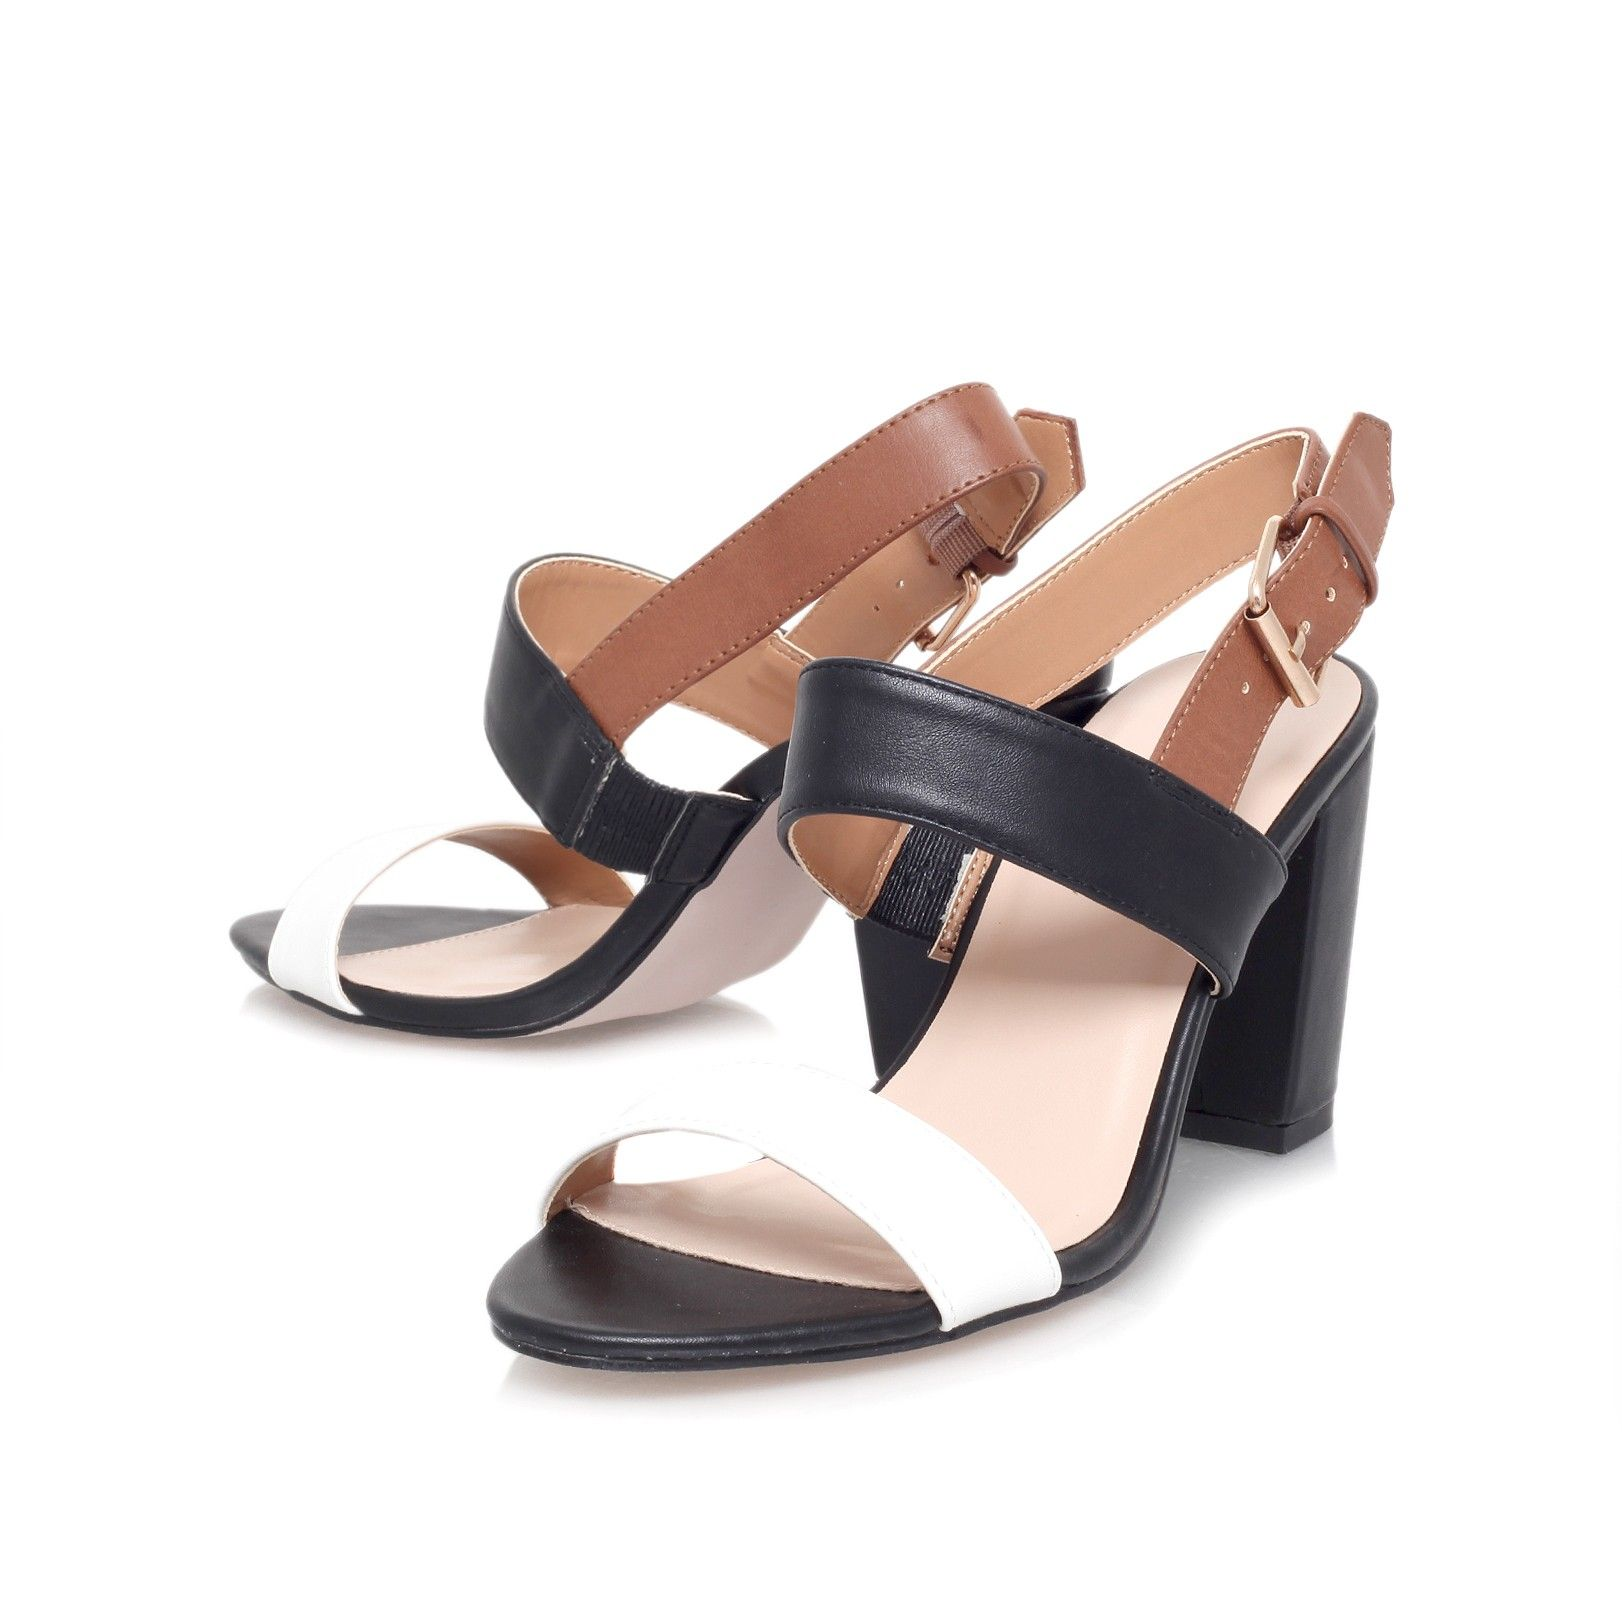 shadow, tan shoe by carvela kurt geiger - women shoes sandals. Mid Heel ...